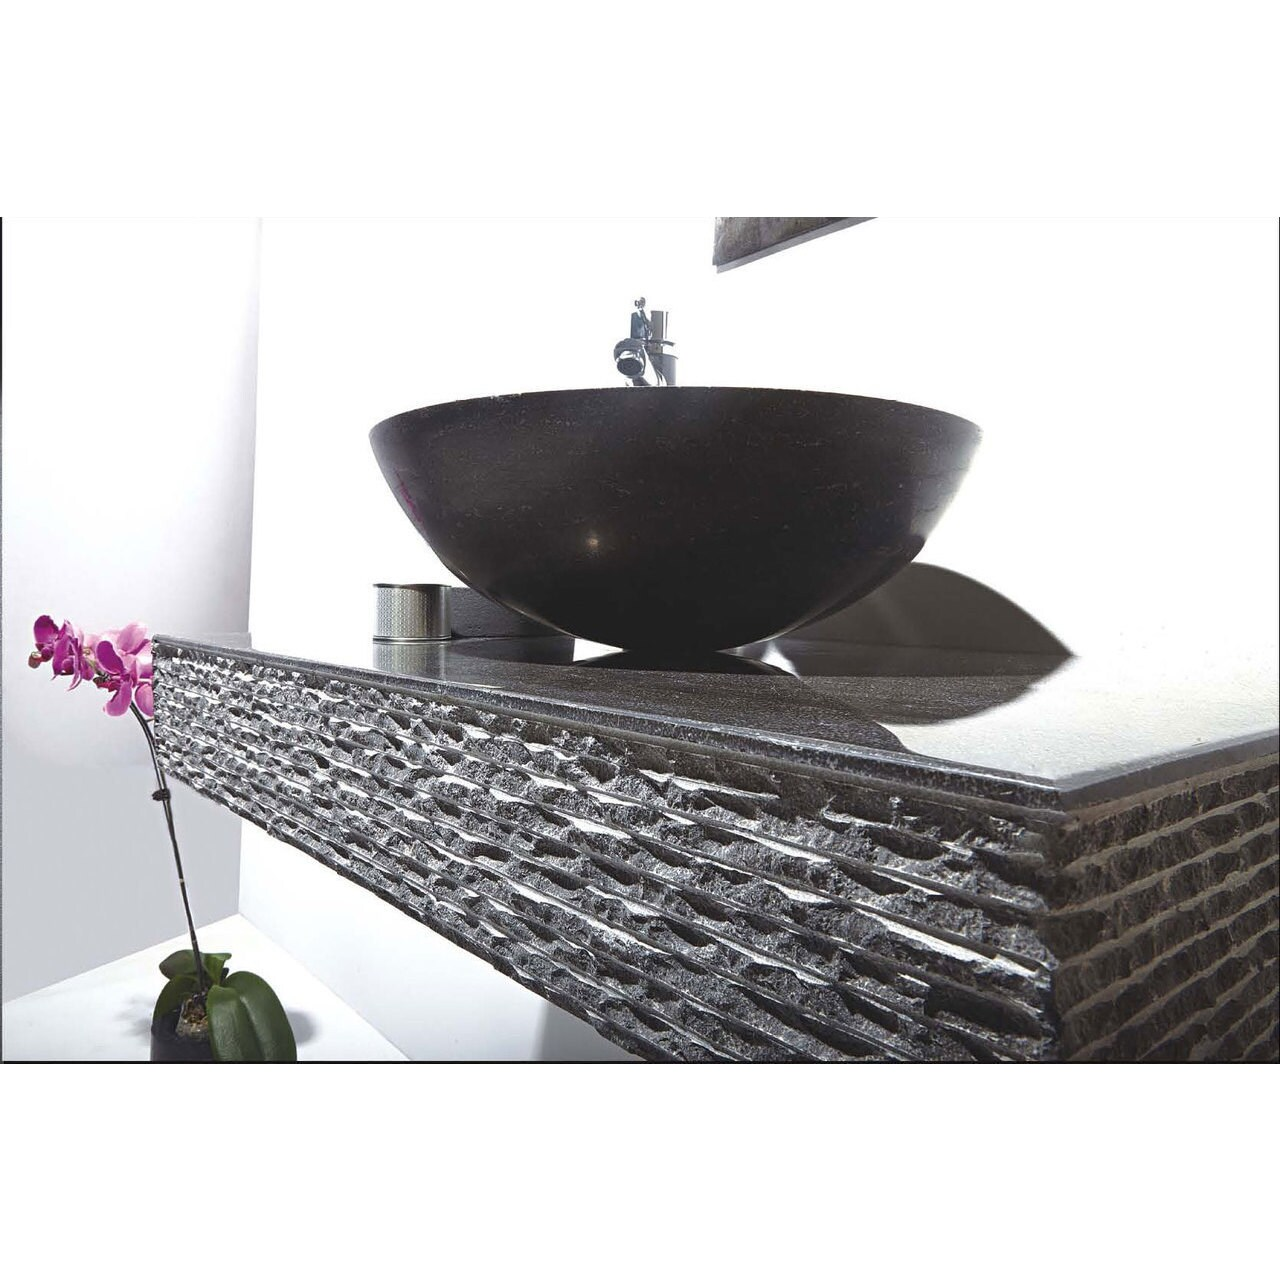 Mtd Vanities Rome Blue Stone 36 Inch Single Vessel Wall Mount Sink On Free Shipping Today 12136151